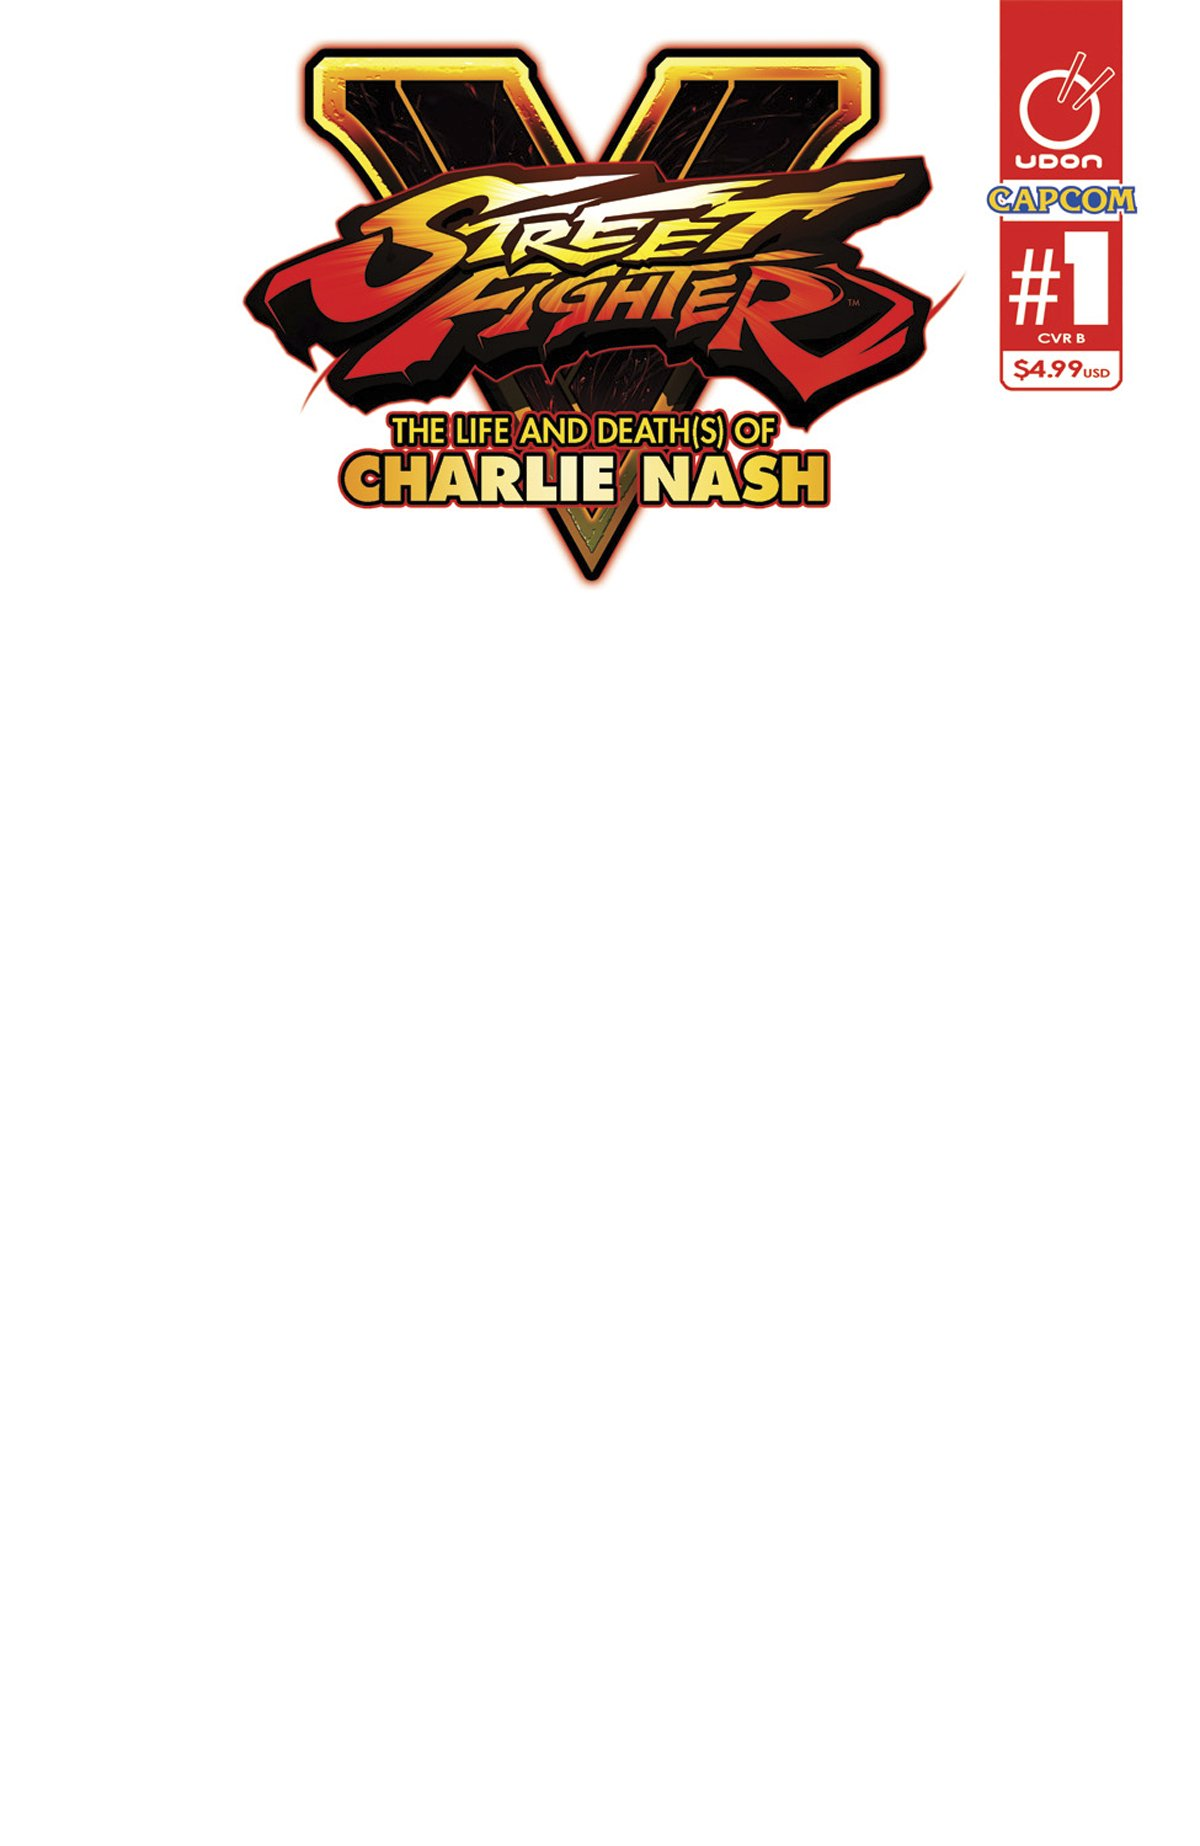 Street Fighter V - The Life and Death(s) of Charlie Nash (March 2016) (cover B)